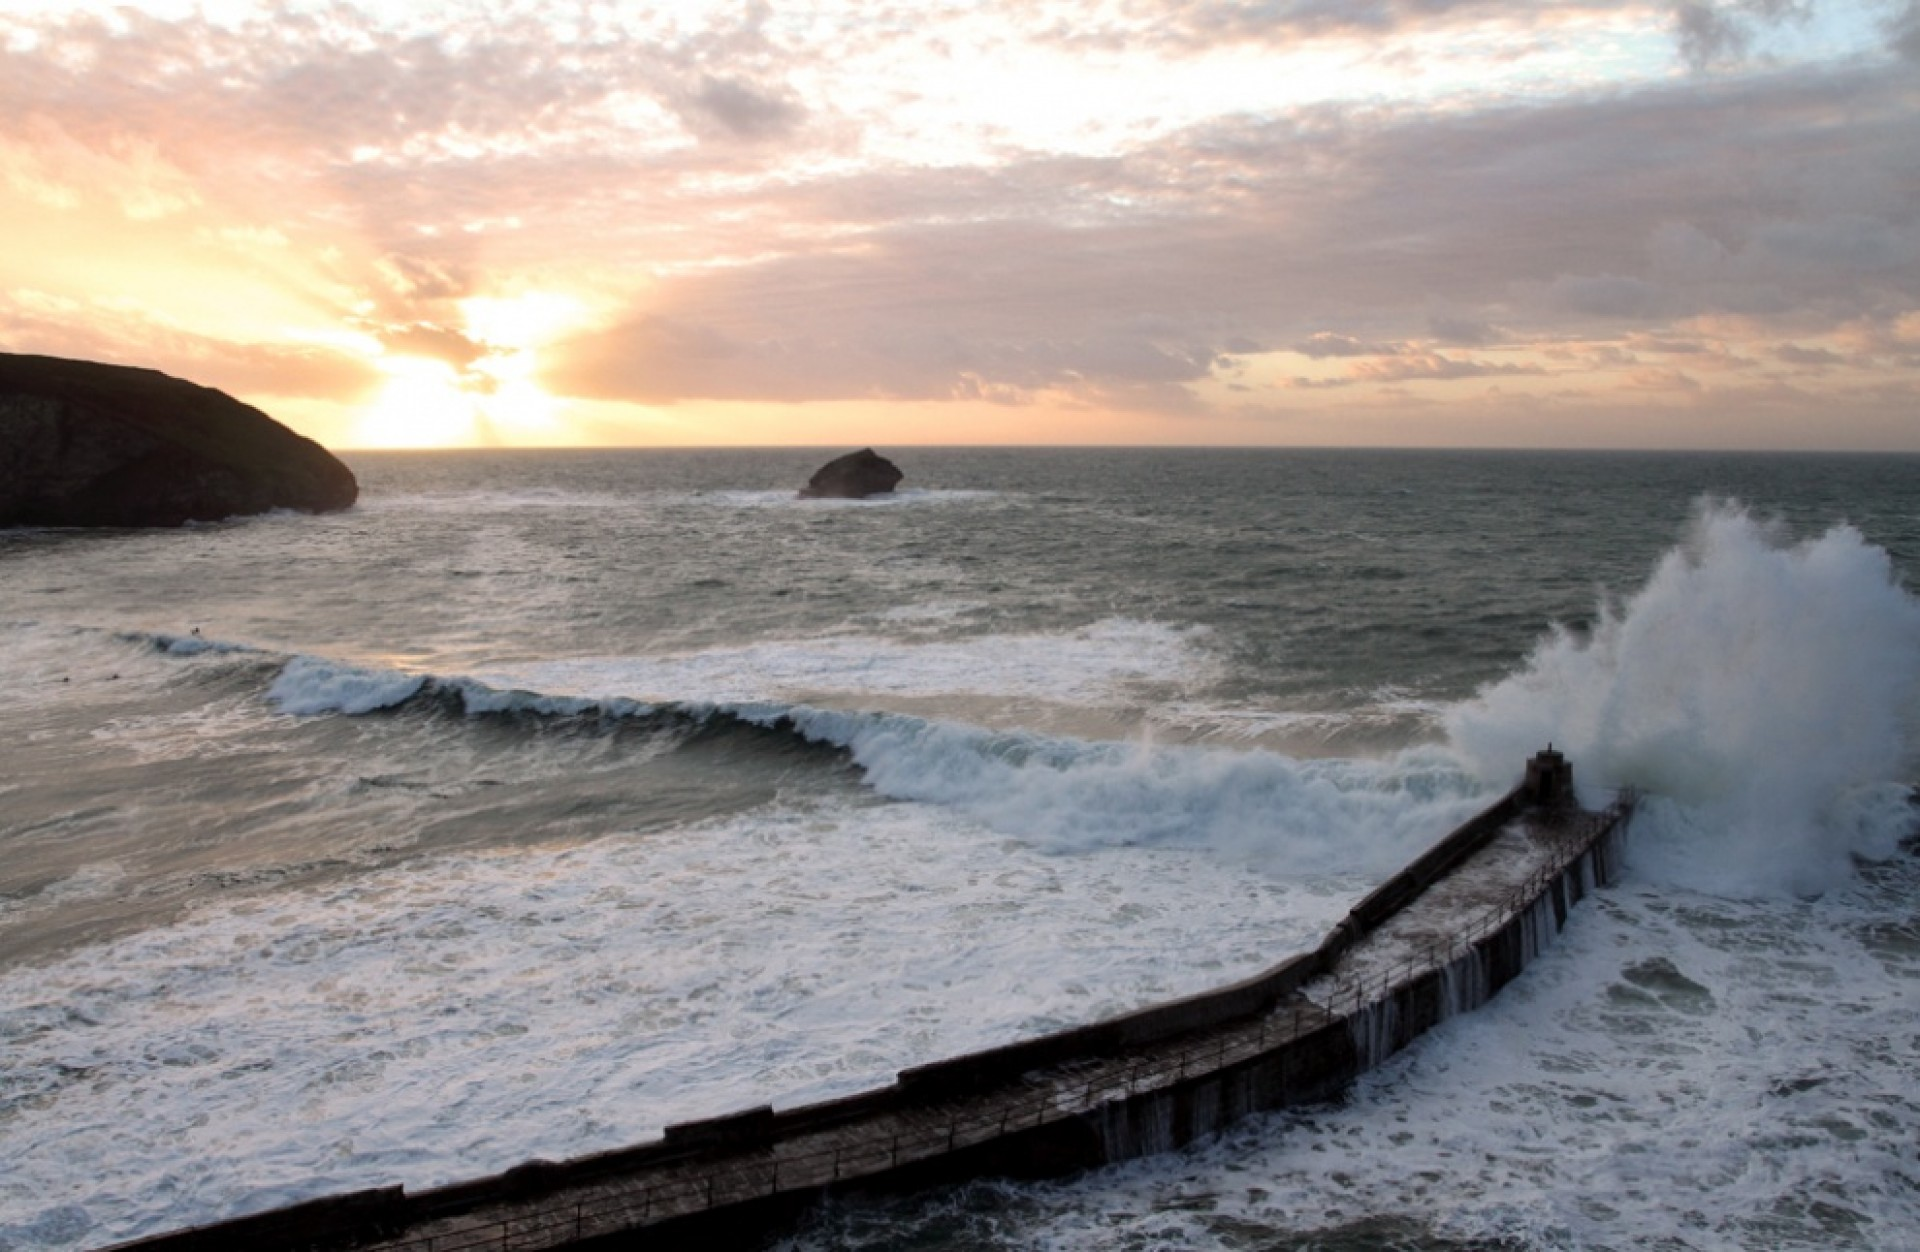 the vanity project's photo of Portreath - Beach